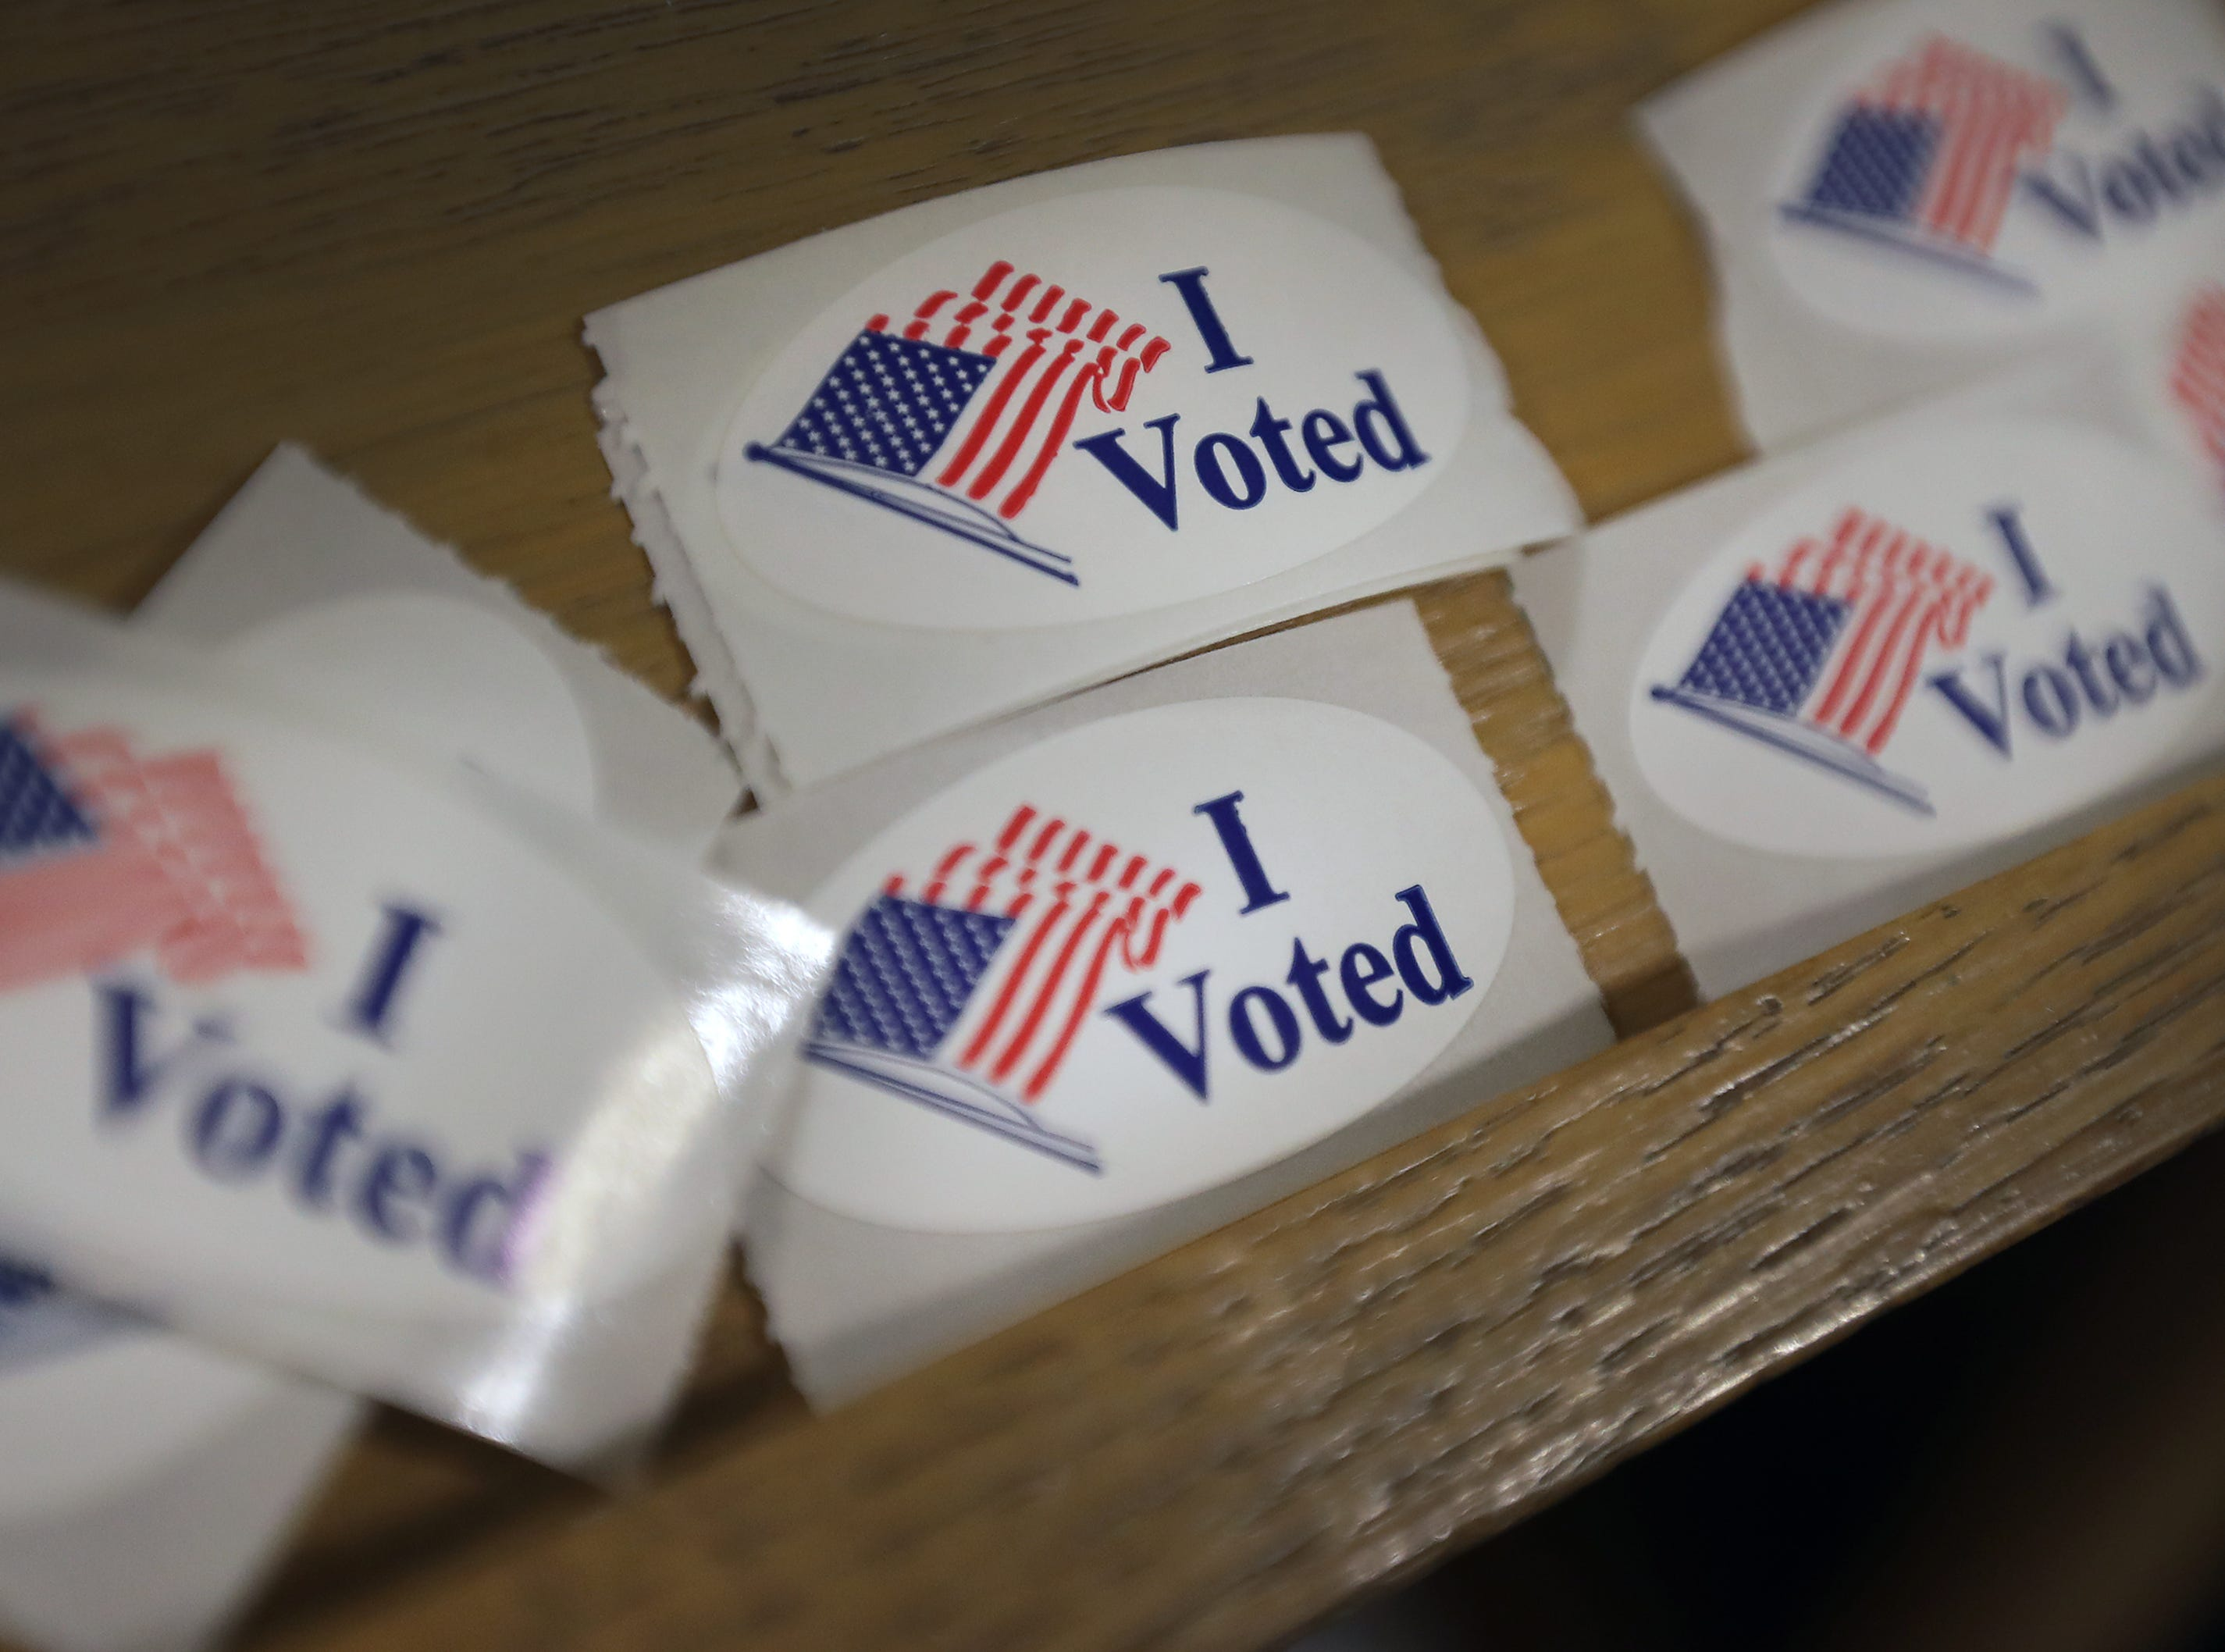 Voters head to the polls at Peace Lutheran Church on Tuesday, April 2, 2019, in Neenah, Wis.